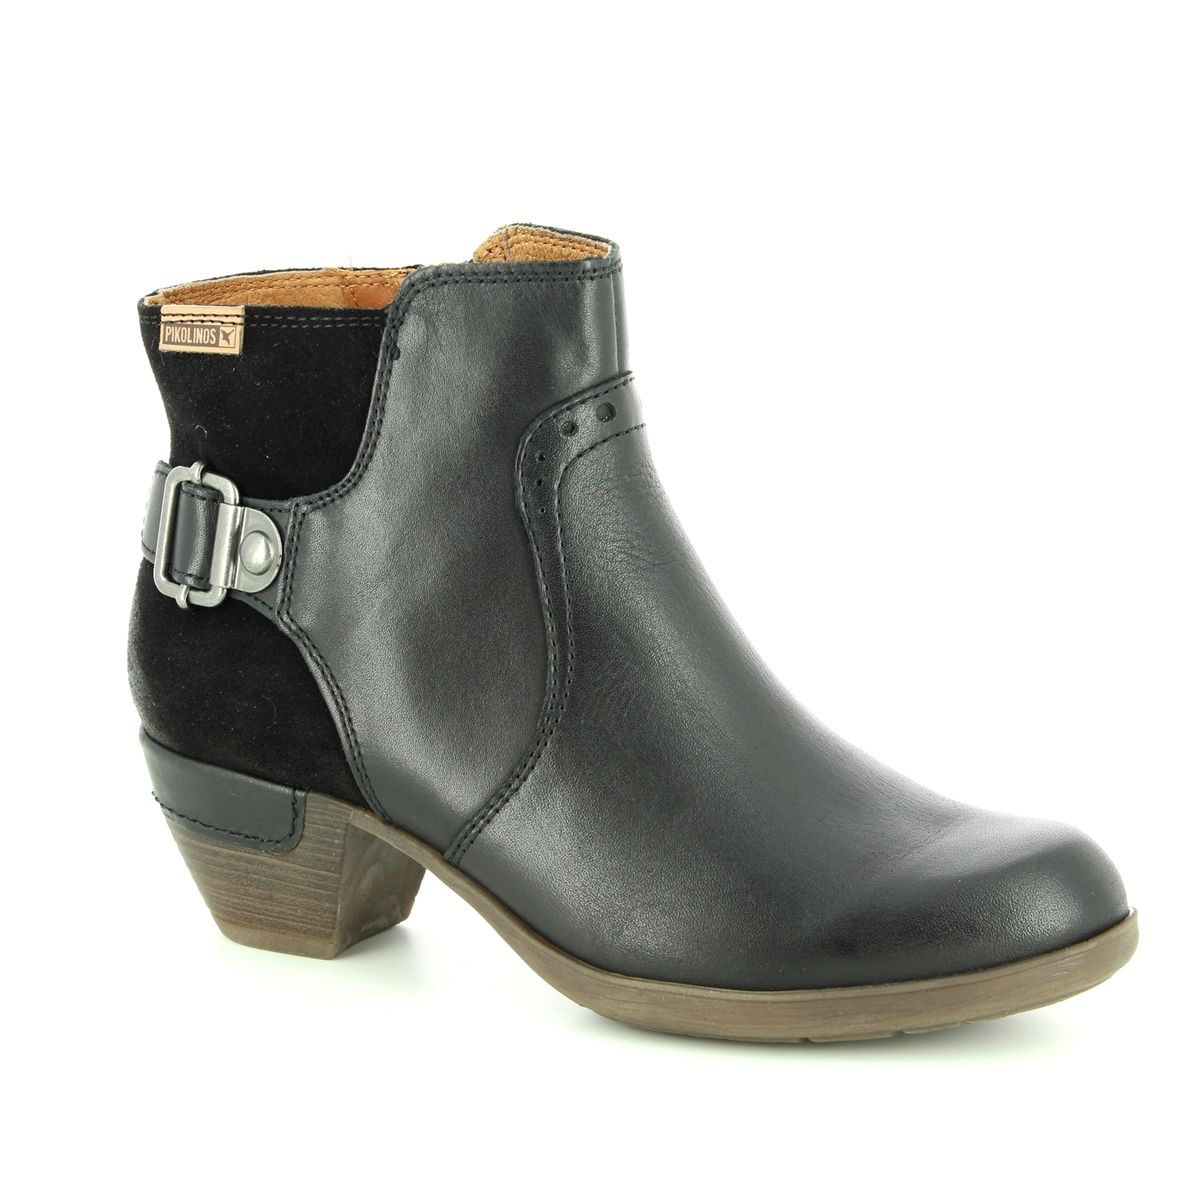 e777c40400f3 Pikolinos Ankle Boots - Black leather - 9029945 30 ROTTERDAM